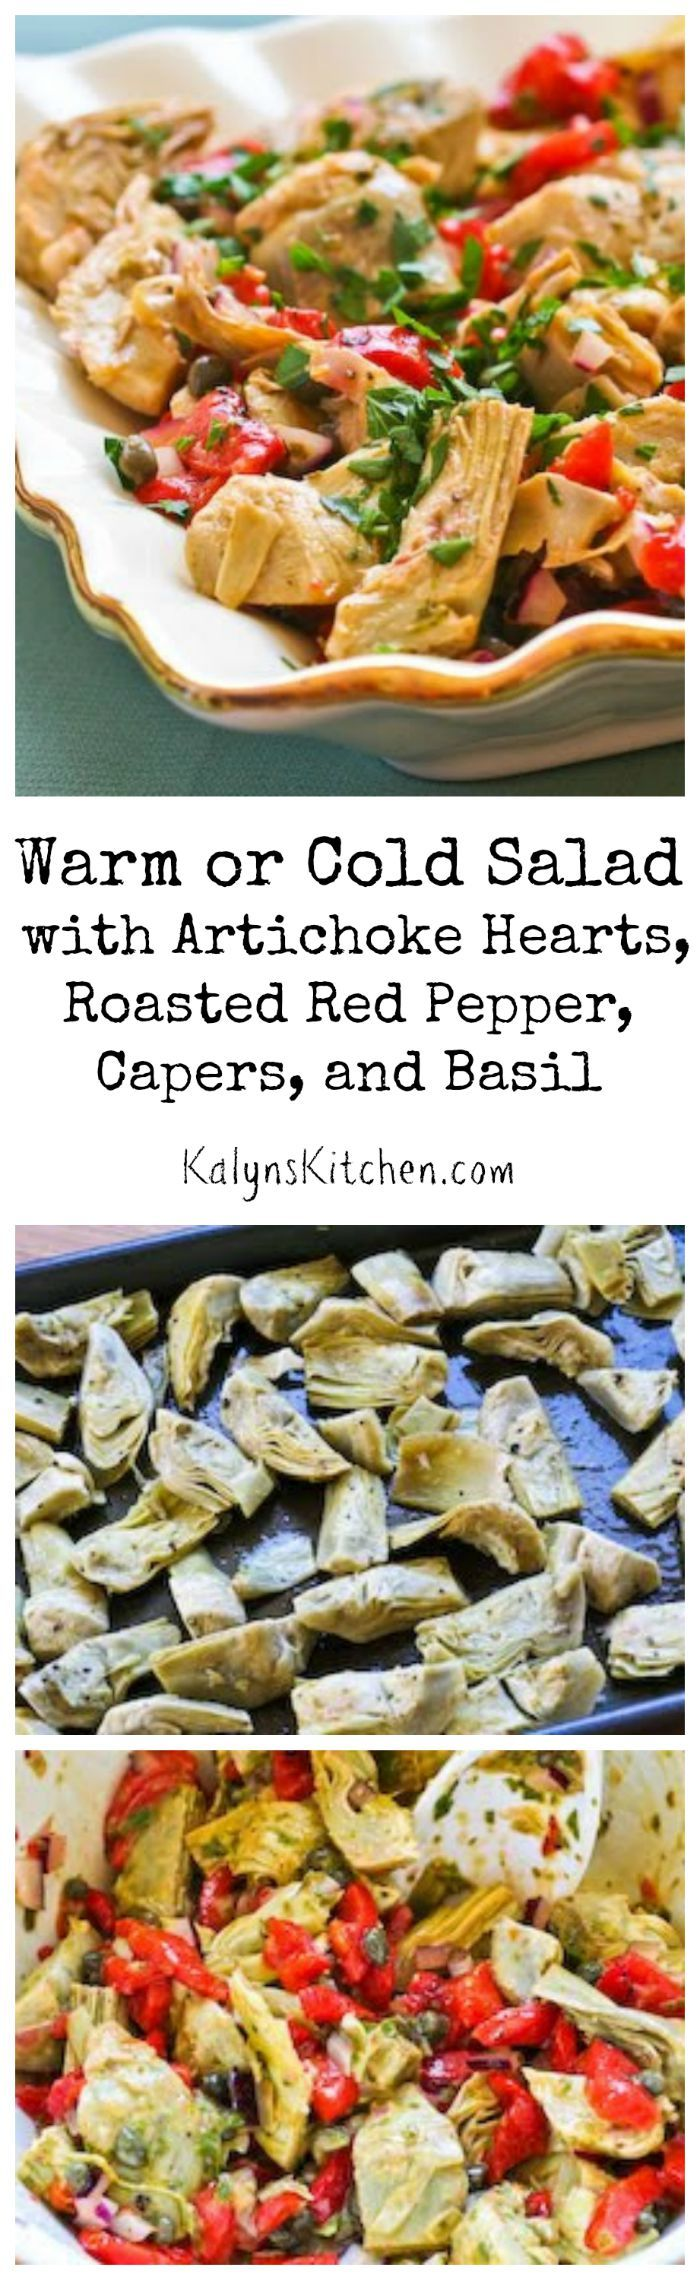 Roasting the artichoke hearts adds an extra layer of flavor to this Warm or Cold Salad with Artichoke Hearts, Roasted Red Pepper, Capers, and Basil Dressing. Perfect for summer into fall parties! [from KalynsKitchen.com]